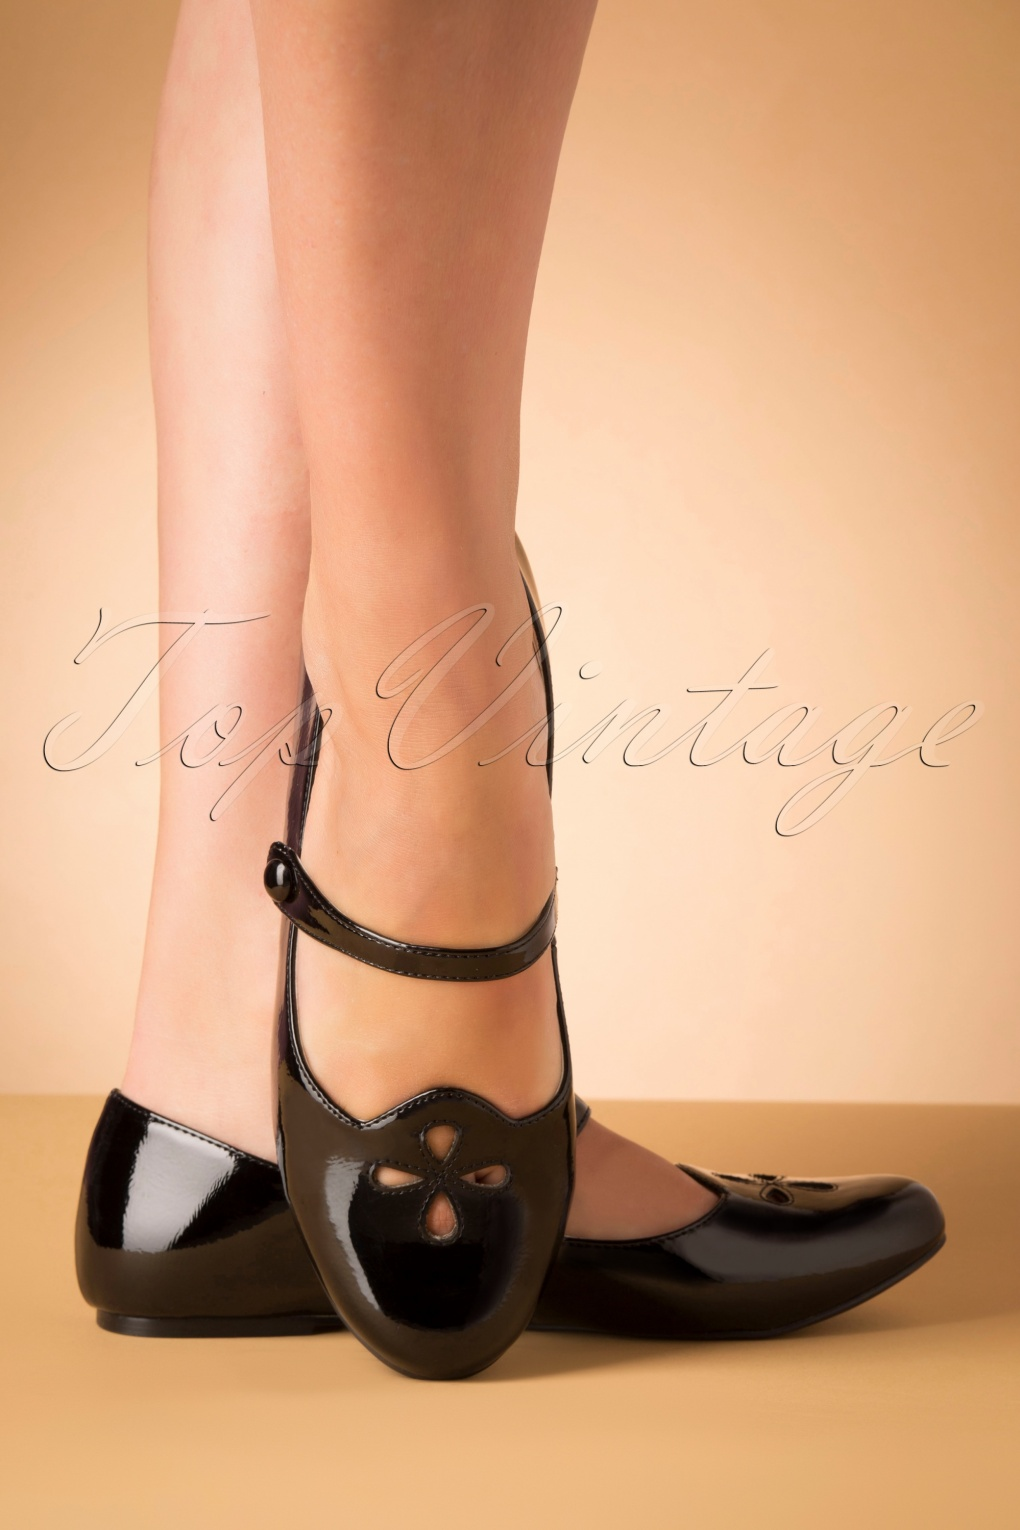 Vintage Style Shoes, Vintage Inspired Shoes 60s Elizabeth Mary Jane Patent Flats in Black £57.90 AT vintagedancer.com